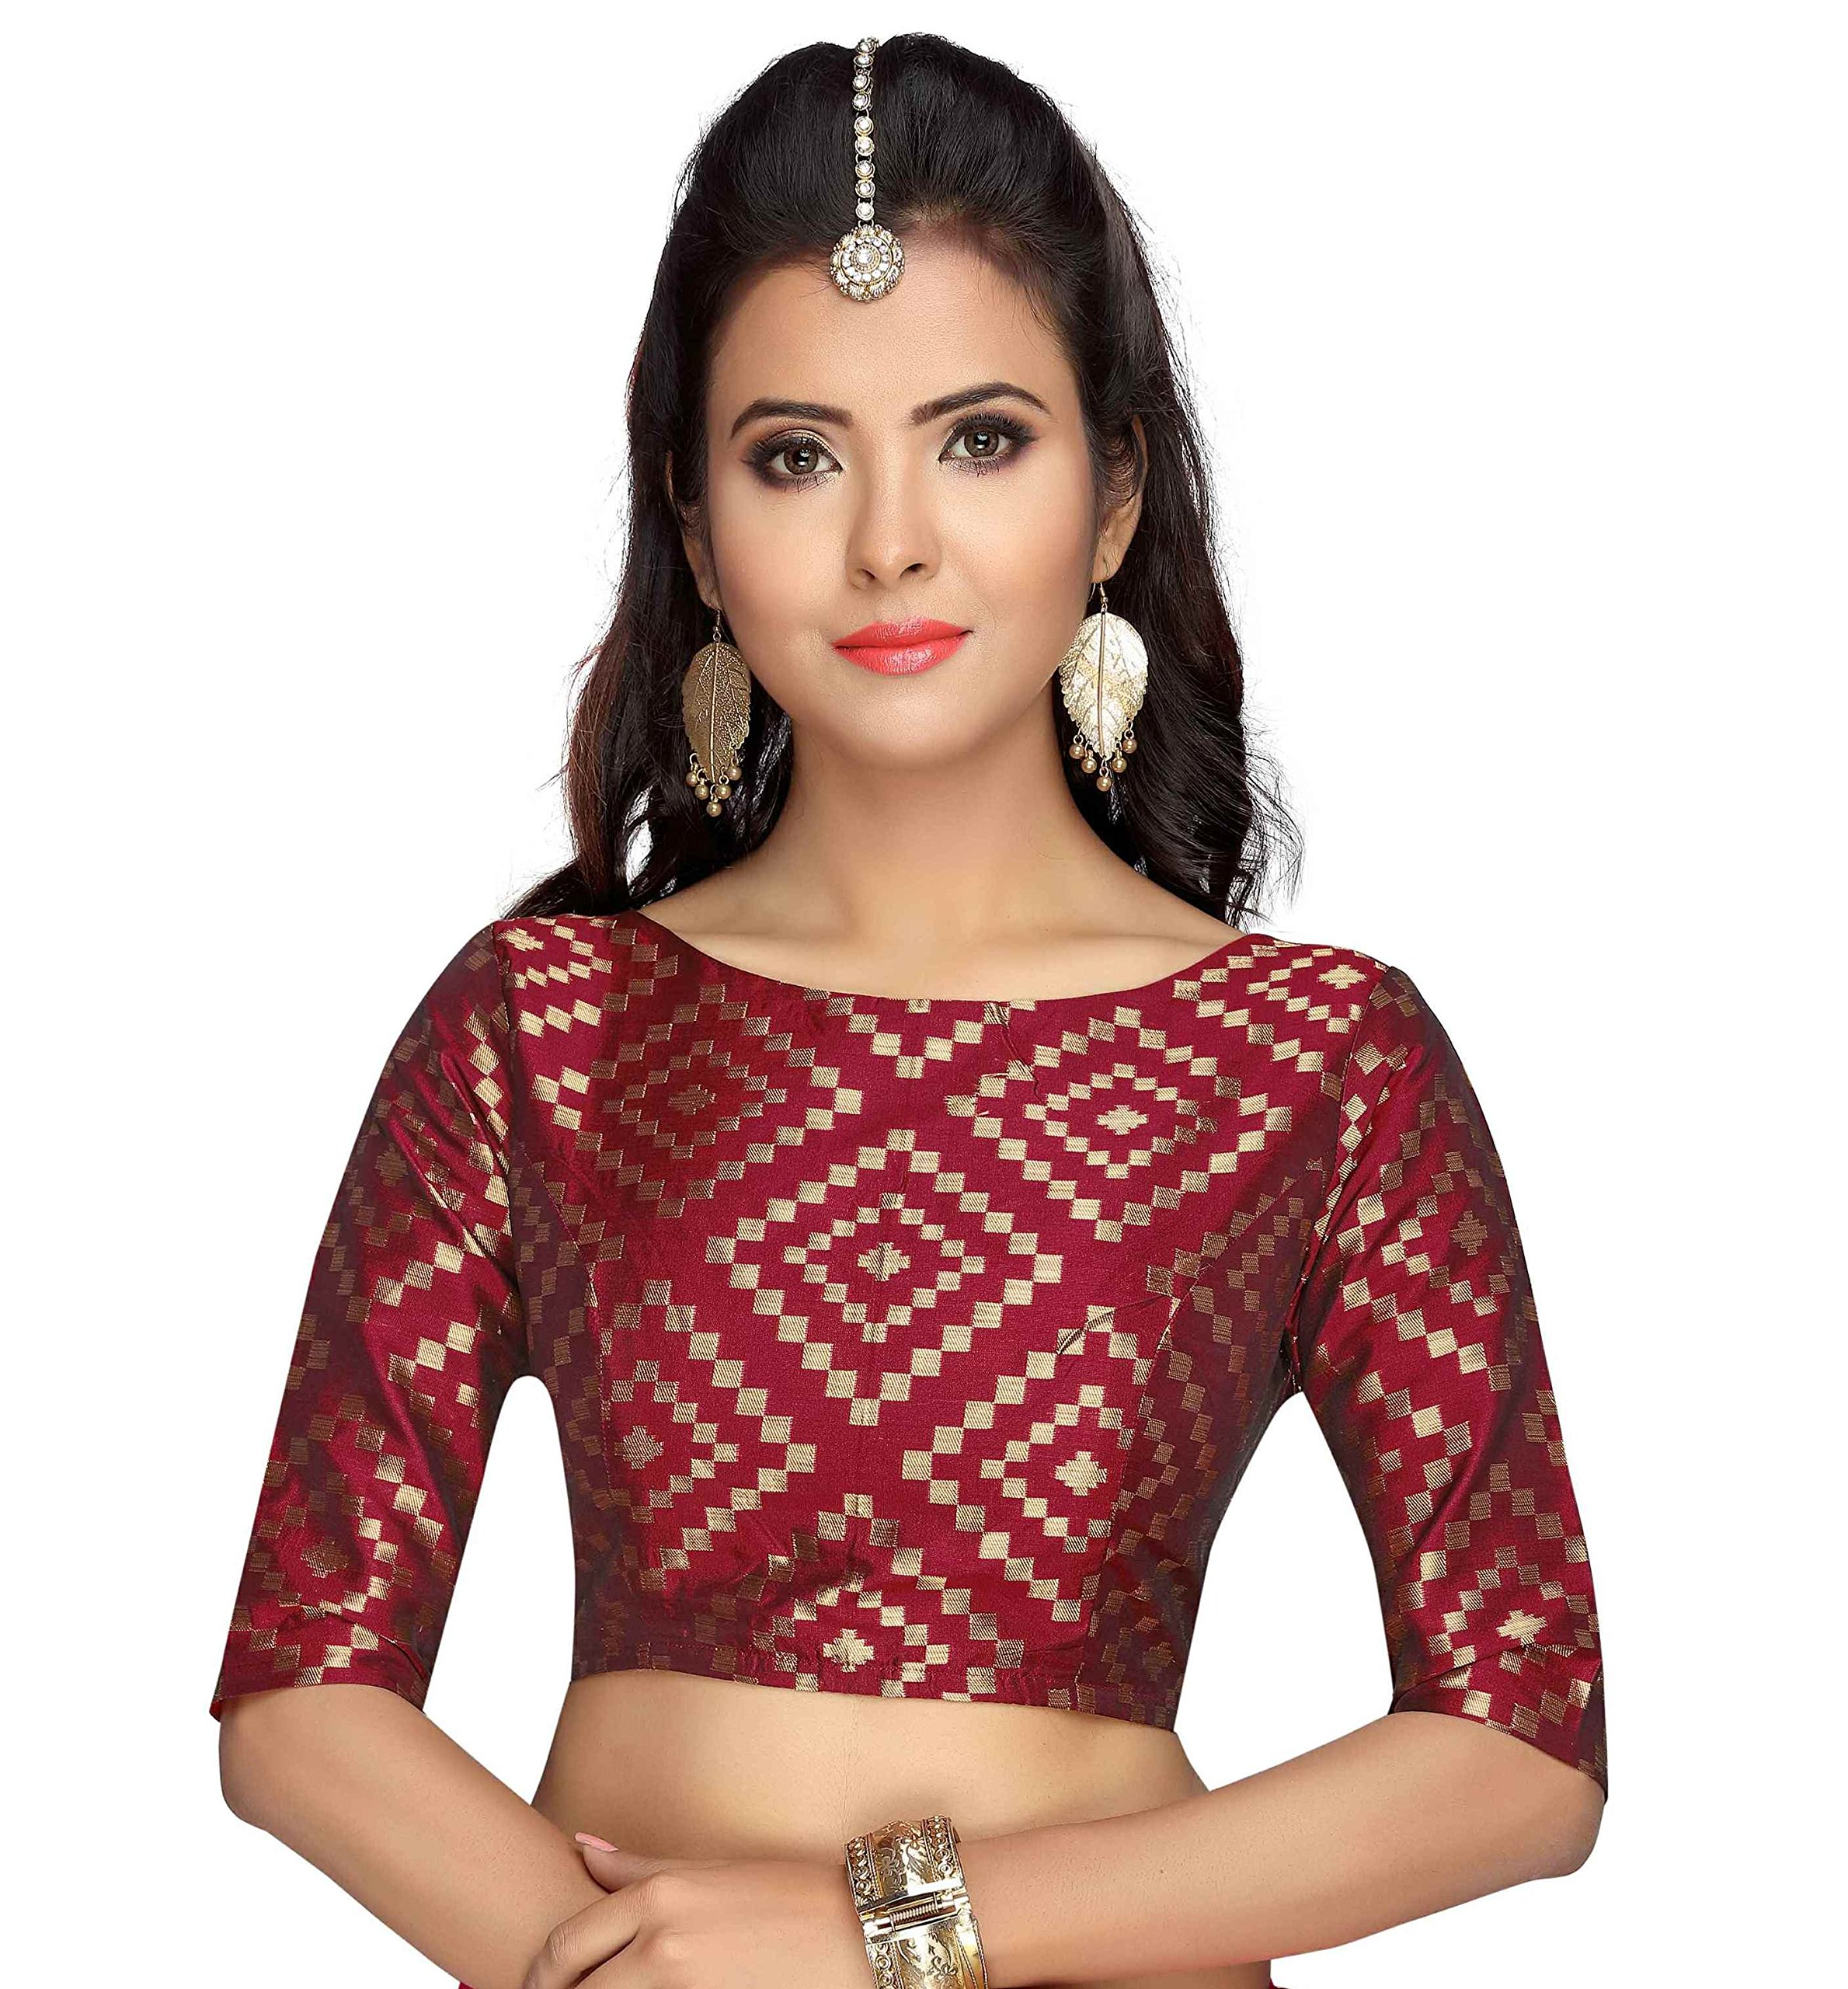 d2578a79833 Studio Shringaar Women's Brocade & Georgette Back Button Elbow Length  Sleeves Readymade Blouse product image